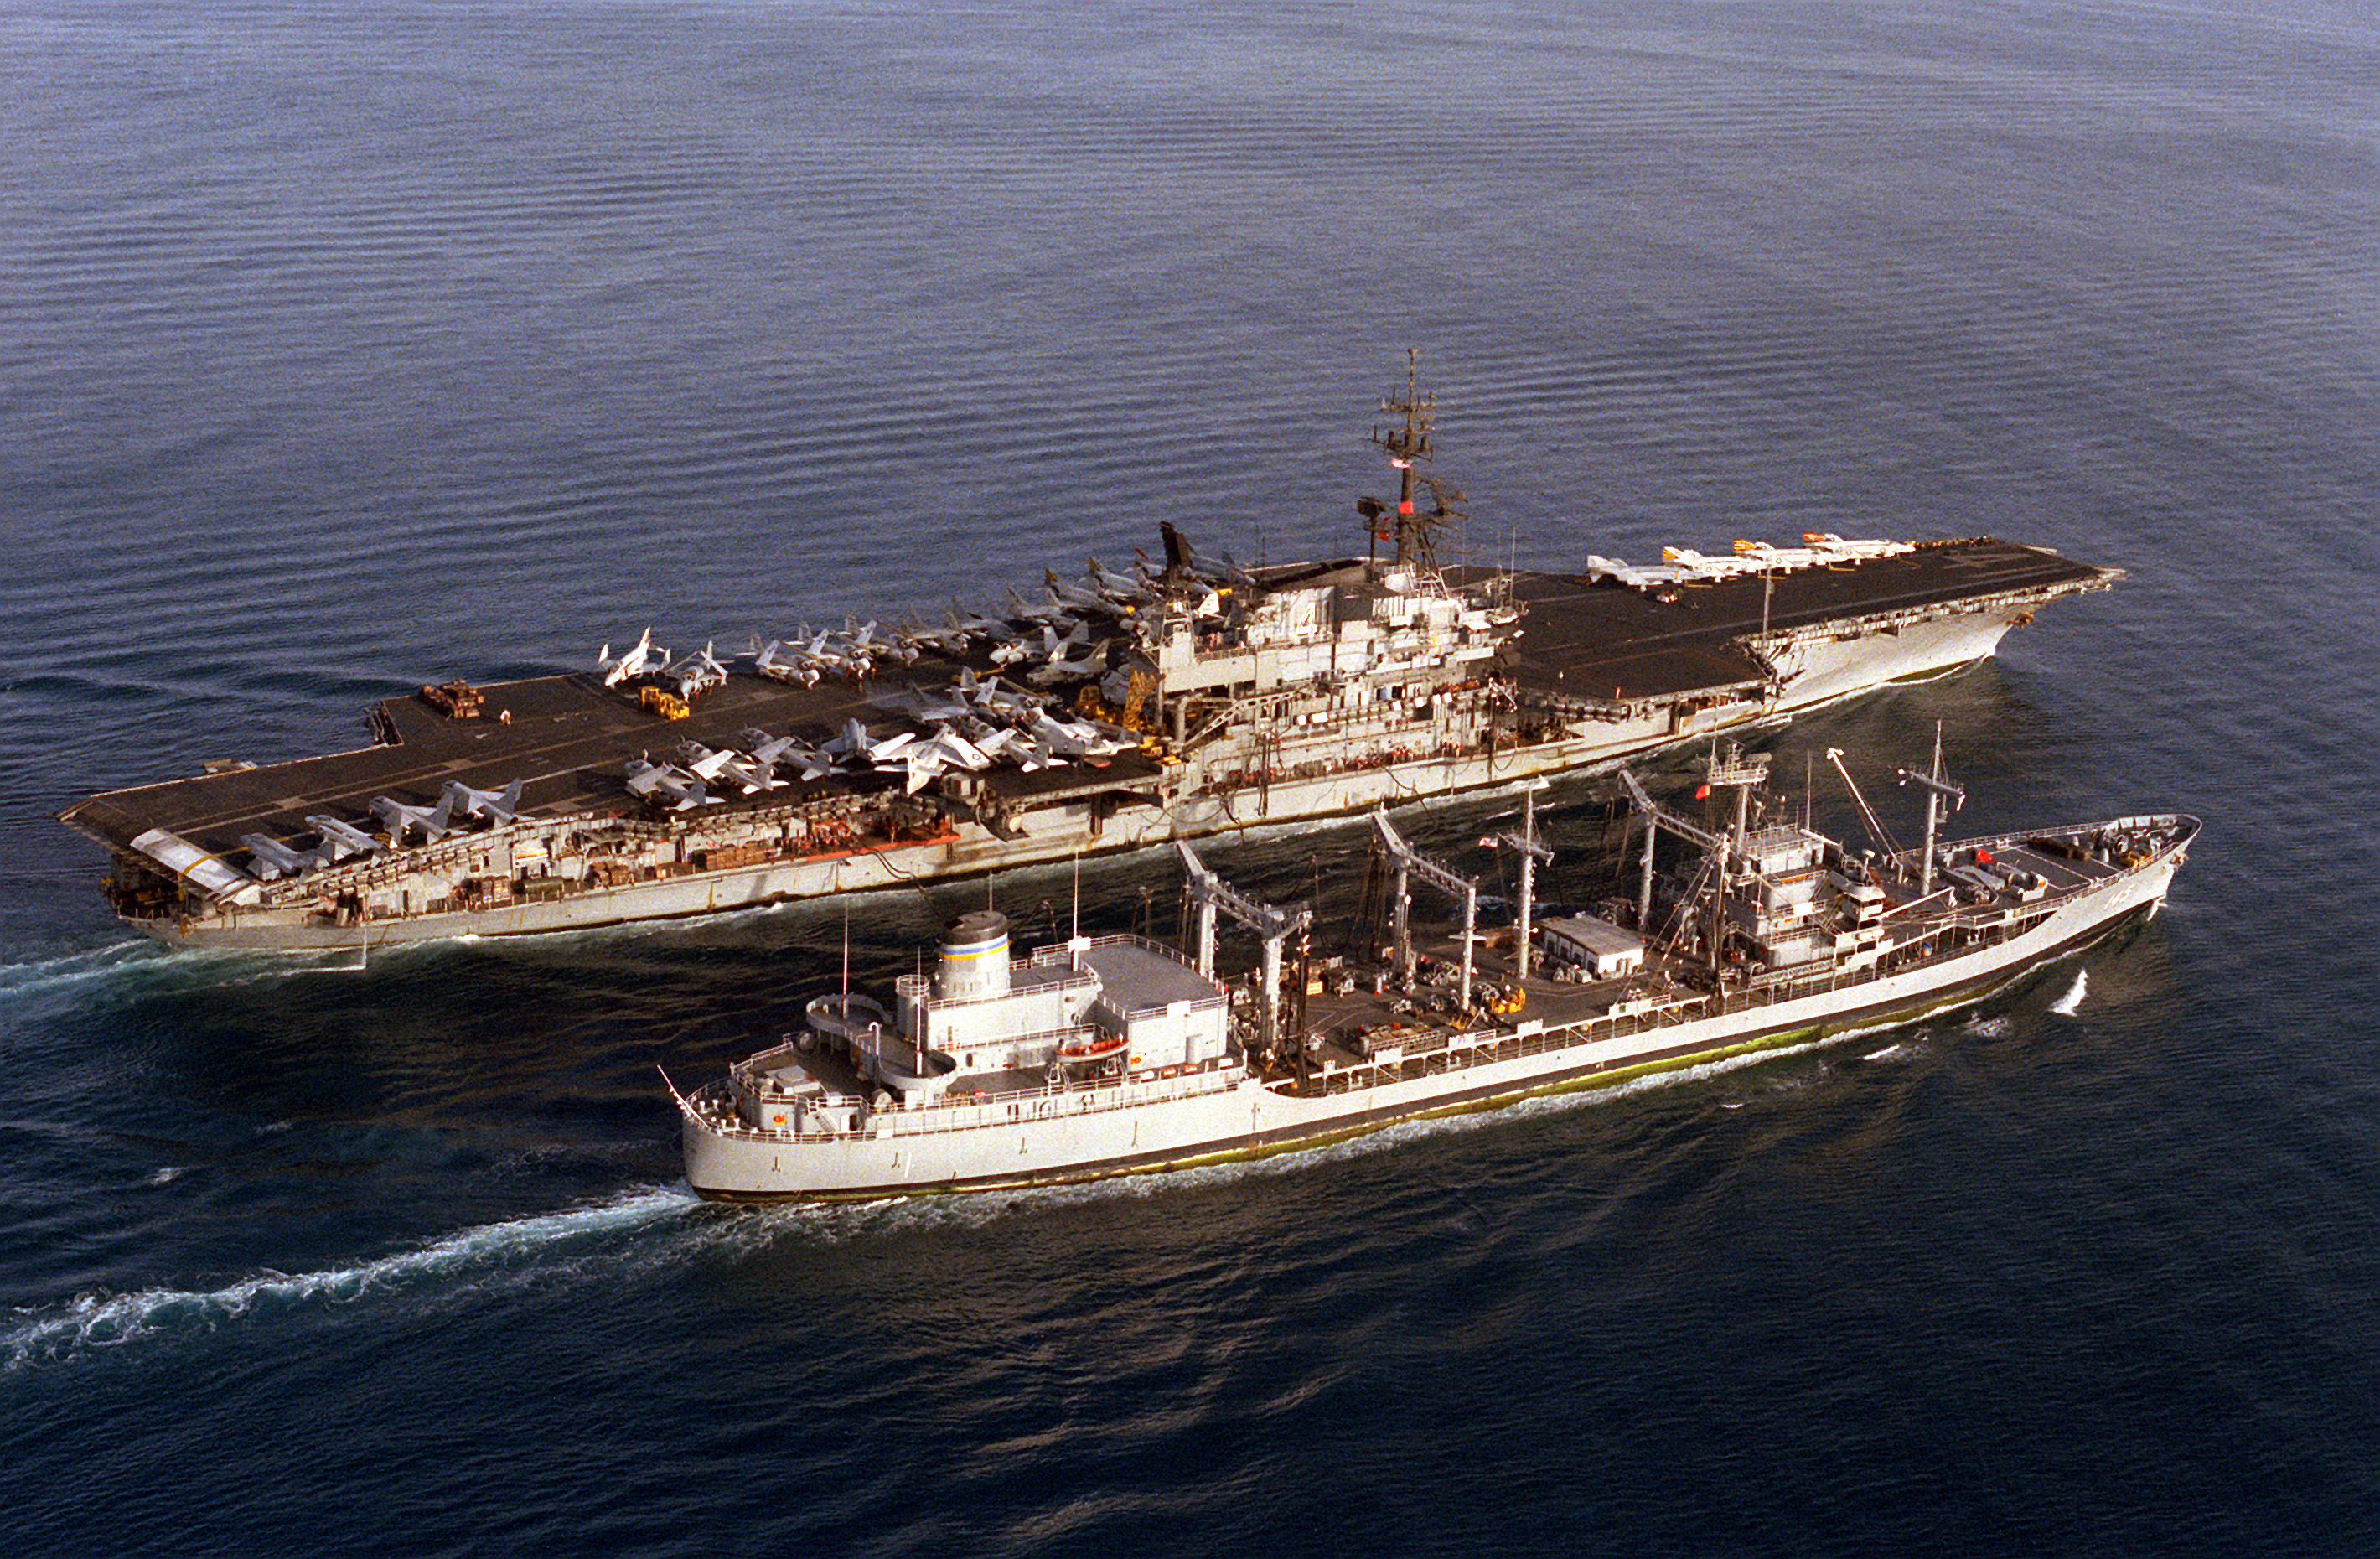 rf planes with File Usns Hassay A Uss Midway 1983 on File 32d Tactical Reconnaissance Squadron   Republic RF 84F 25 RE Thunderflash   52 7292 furthermore Pcb Stack Up additionally UB Seeks Investor Nod To Infuse More Funds Into Kingfisher in addition Napalm together with File usns hassay a uss midway 1983.